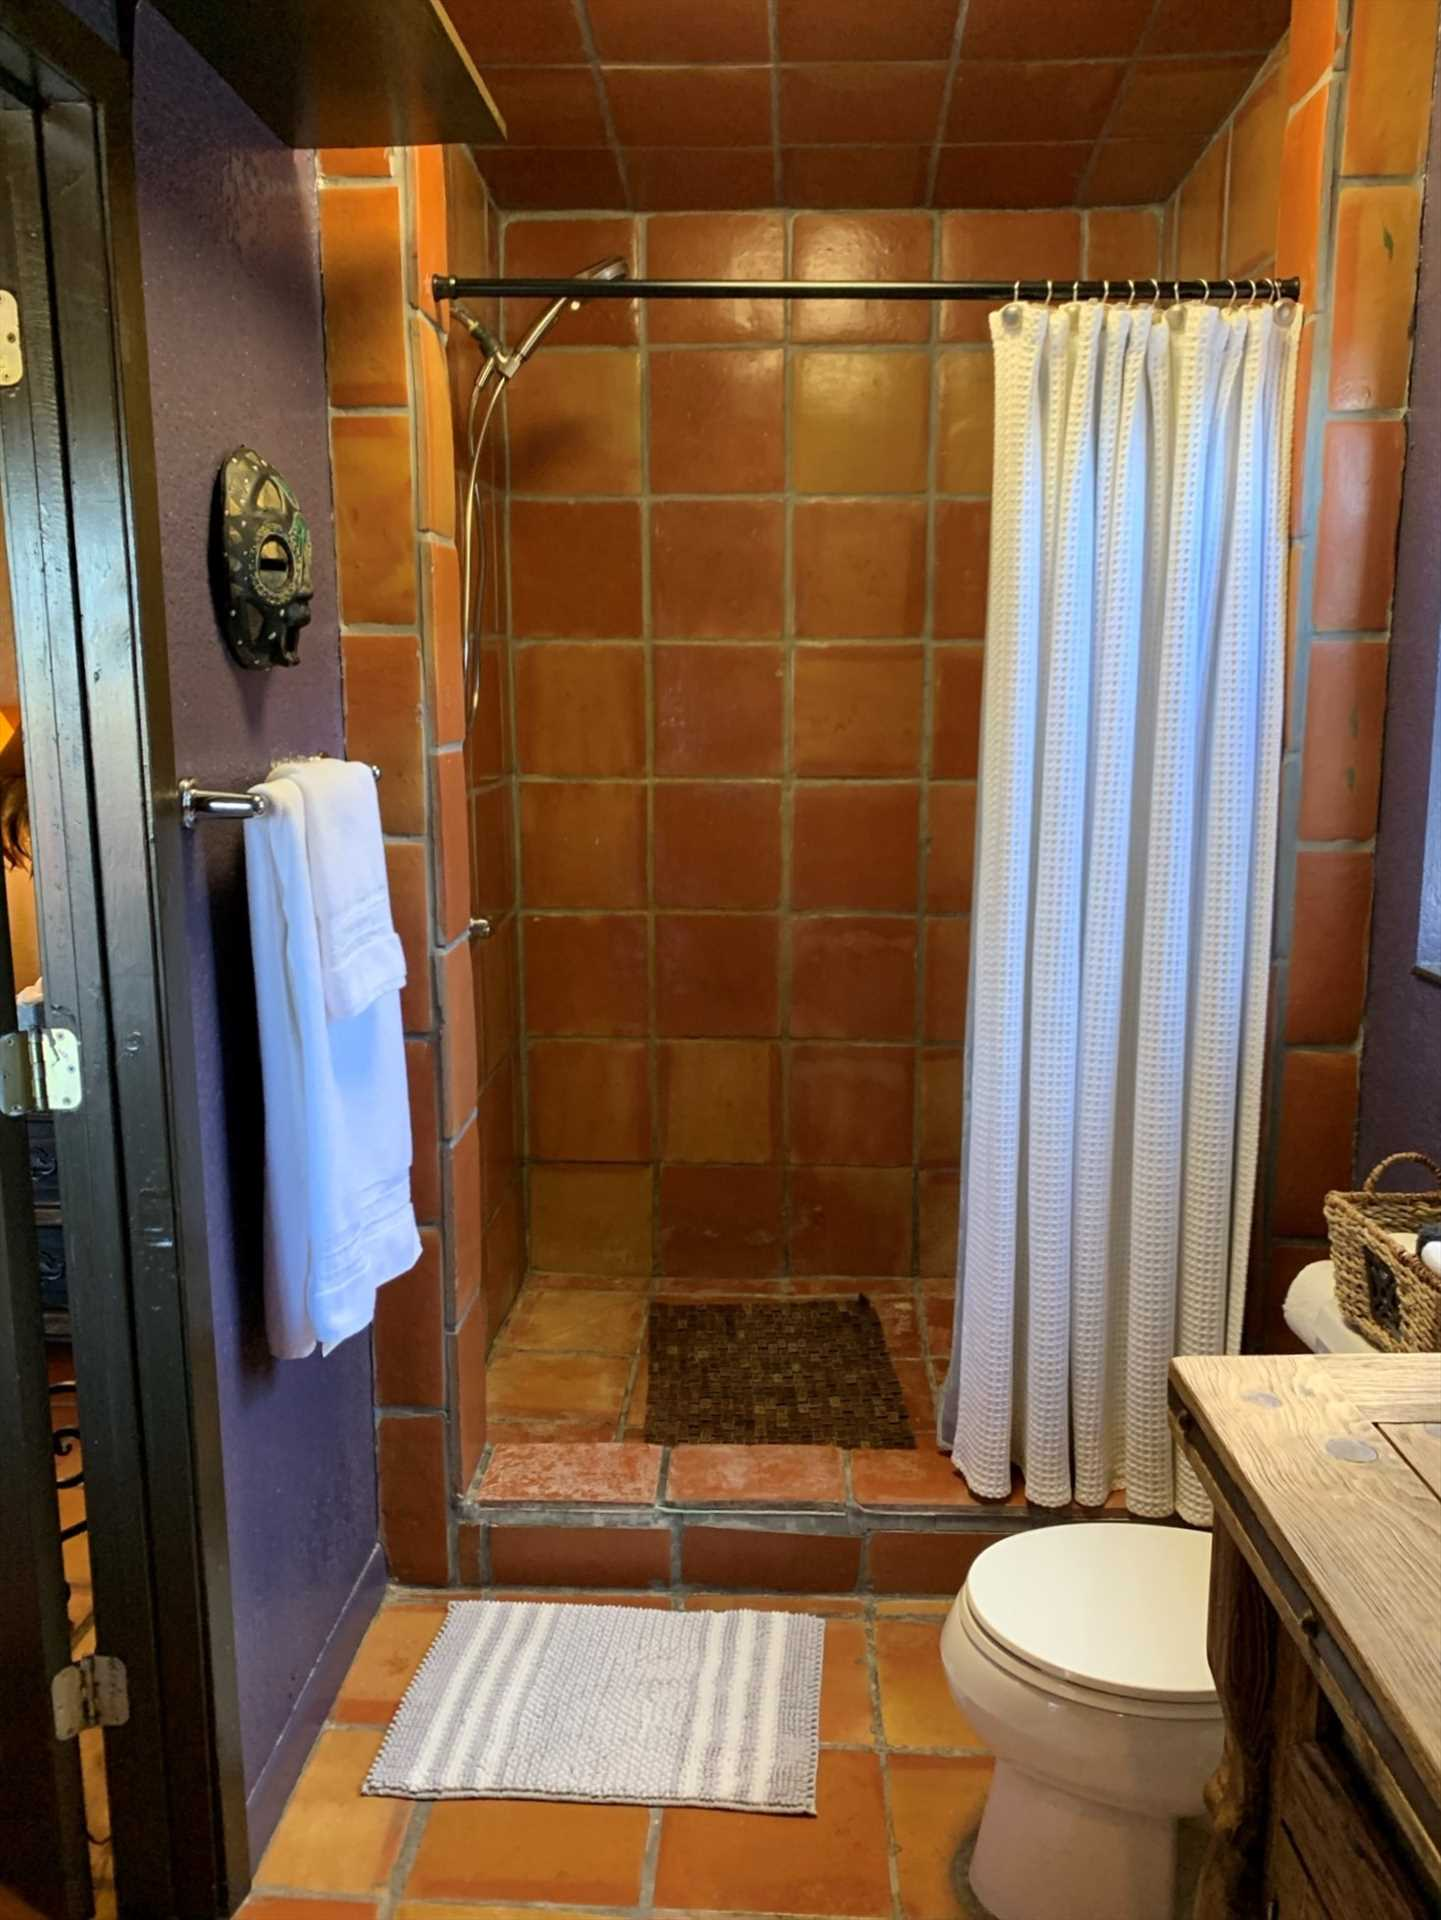 The full bath features a sit-down style shower with warm stone highlights-and all bed and bath linens are included for your stay.